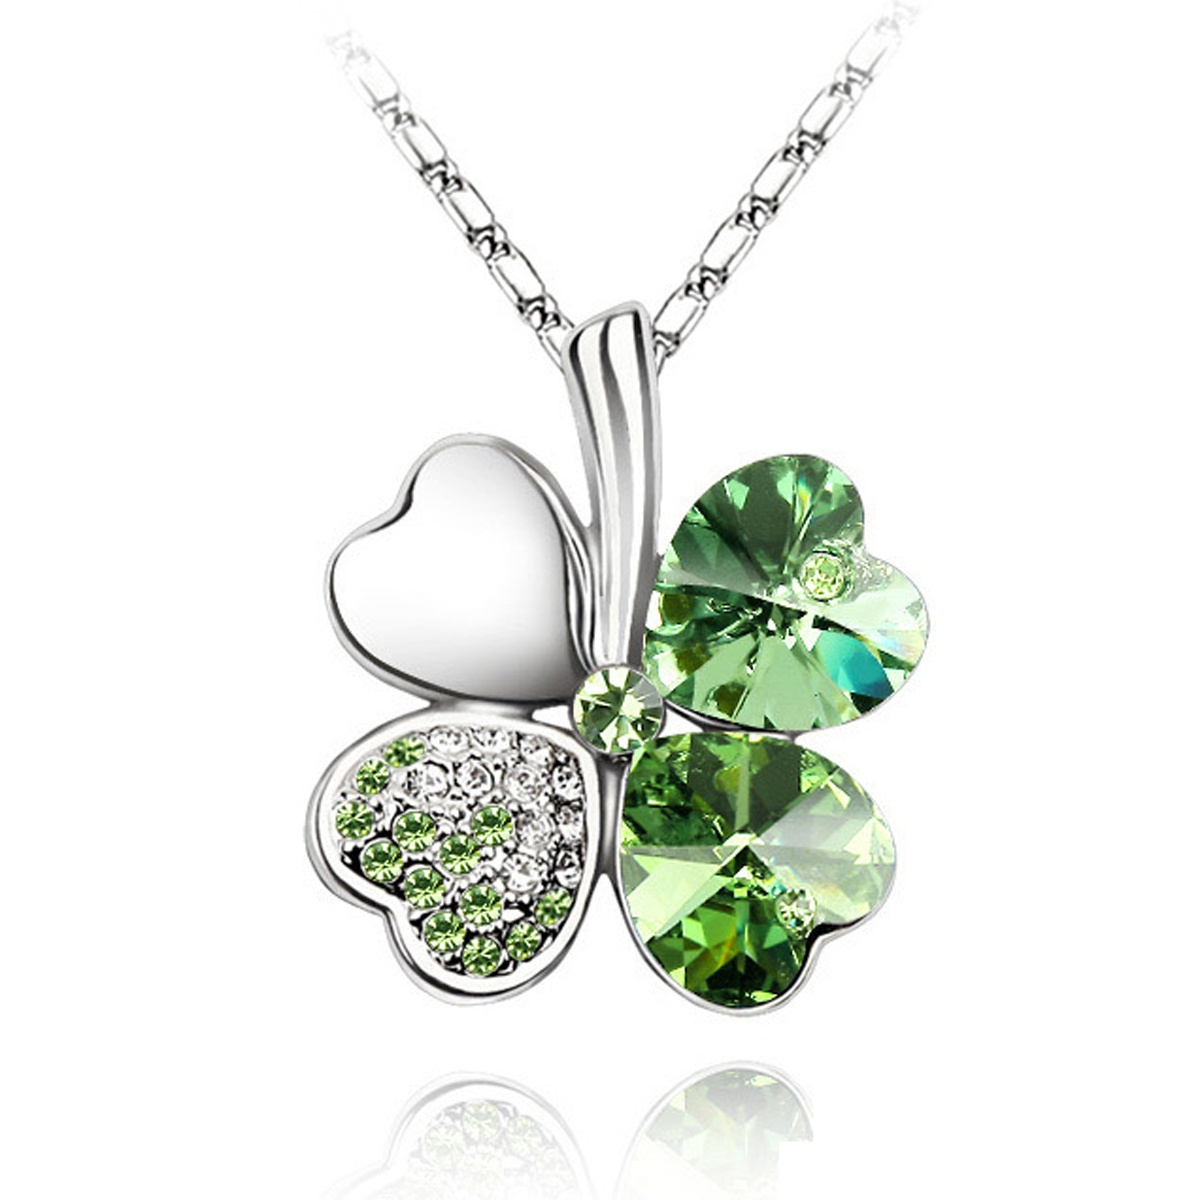 Wrapables® Gold Plated Elements Crystal Four Leaf Clover Pendant Necklace And Earrings Jewellery Set, Green Regarding Best And Newest Lucky Four Leaf Clover Locket Element Necklaces (View 21 of 25)